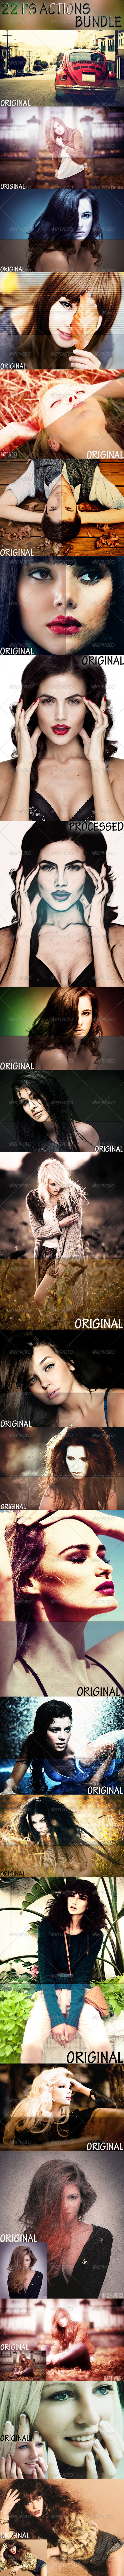 GraphicRiver 22 Ps Actions Bundle 8159842